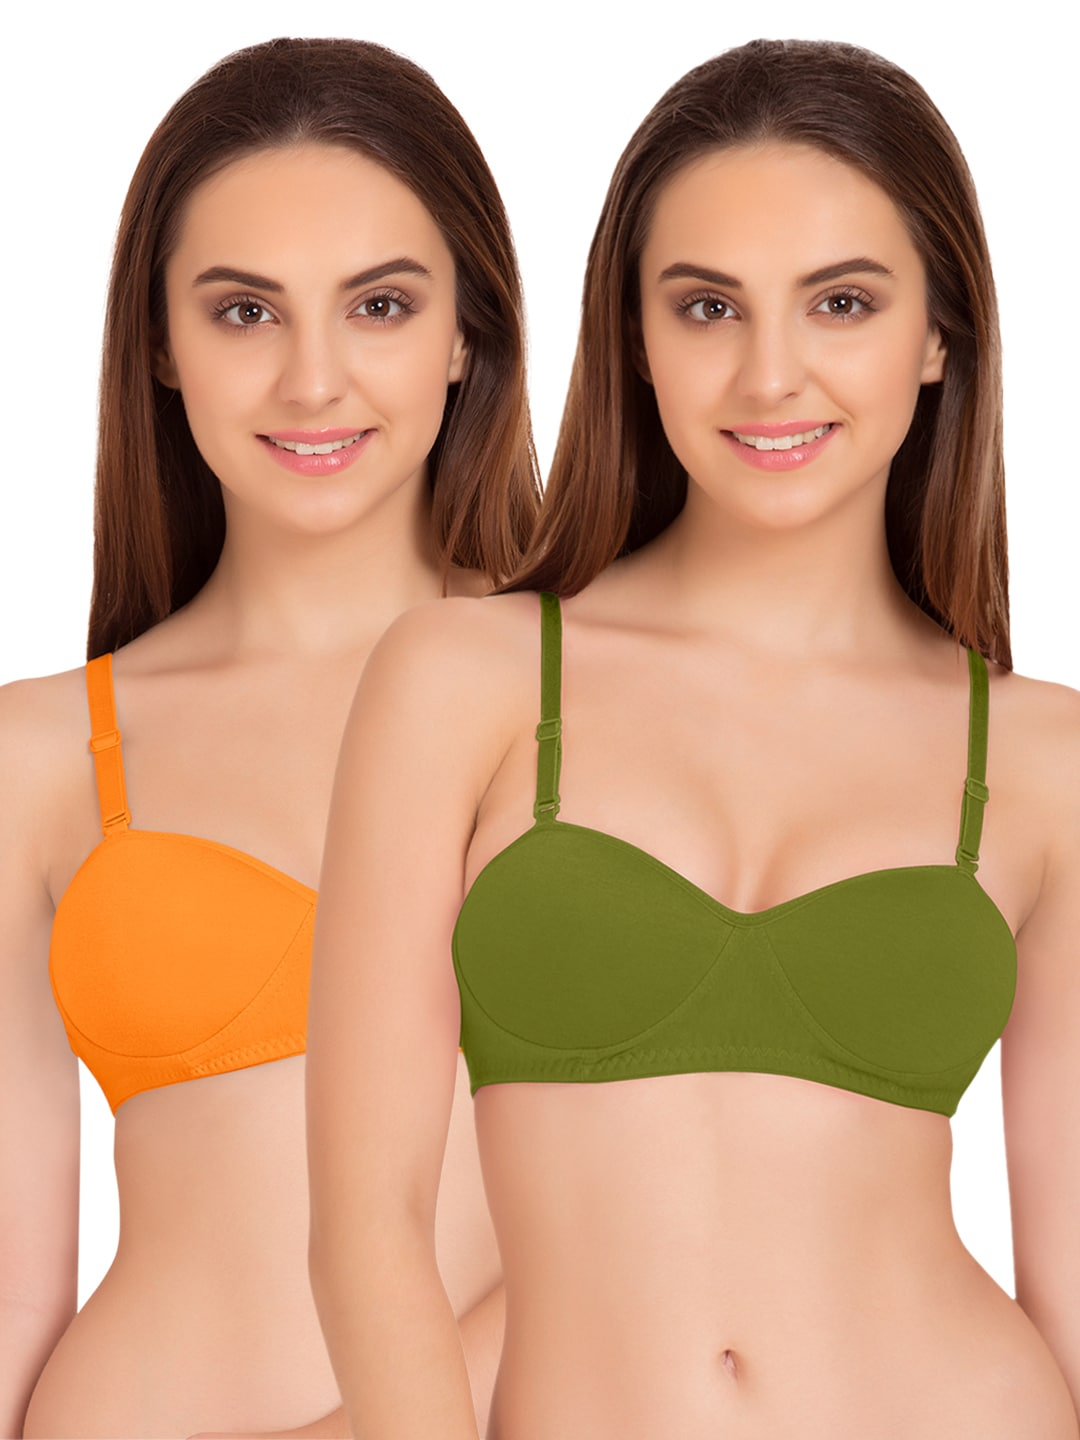 Tweens Pack of 2 Padded T-shirt Bras TW91201ORG-2PC-OLV image